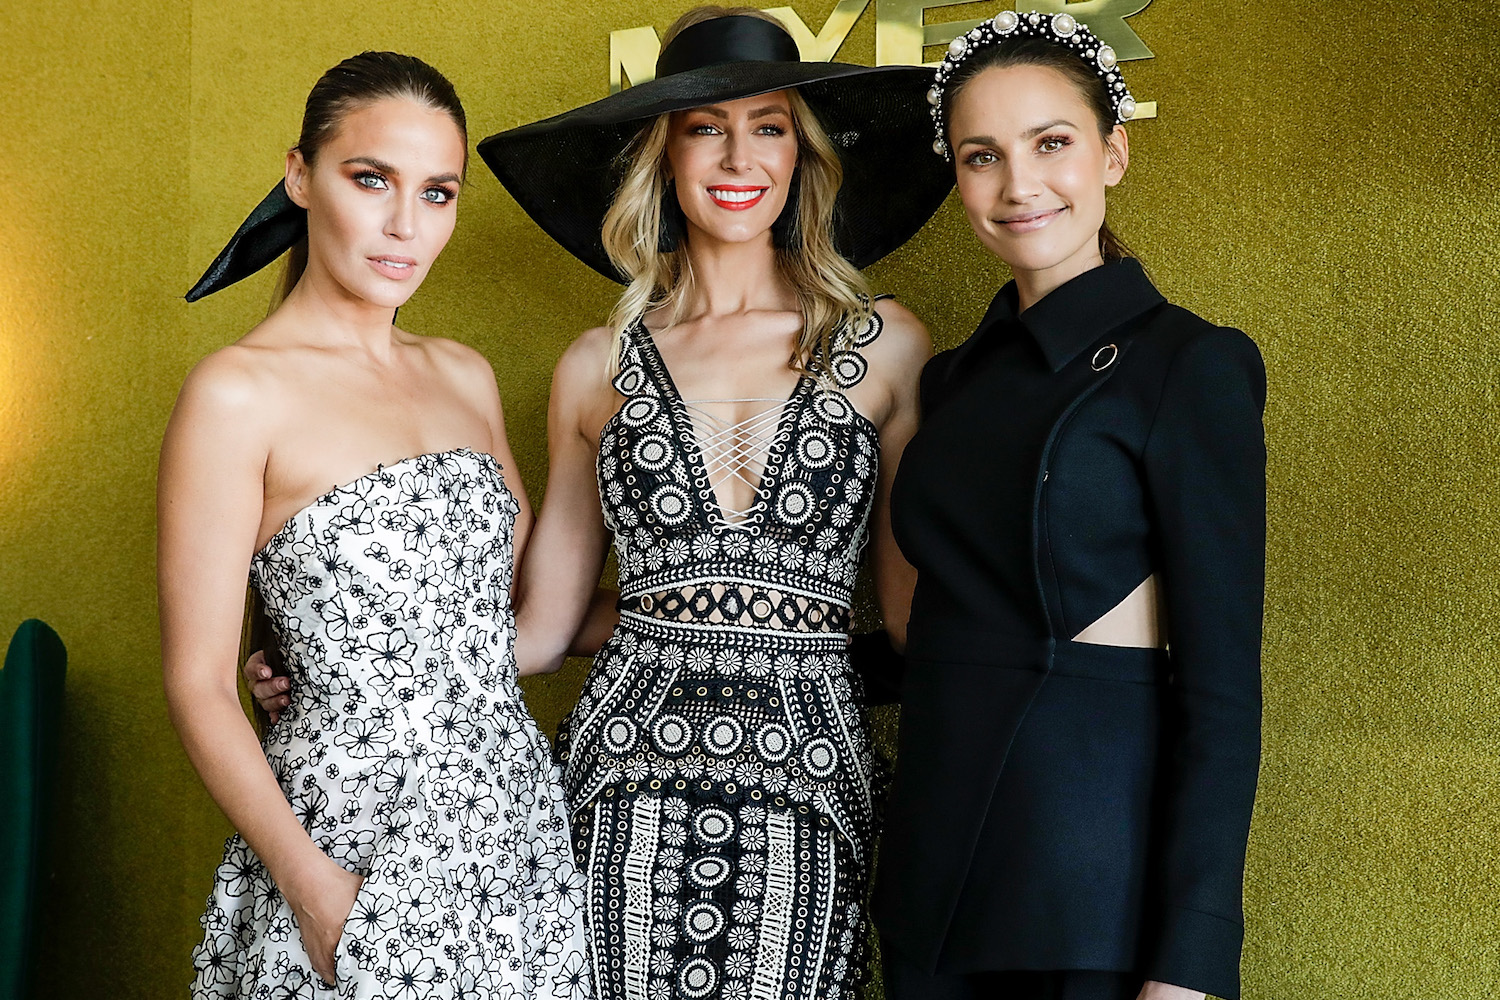 Day at the races: Aussie stars glam up for Caulfield Cup